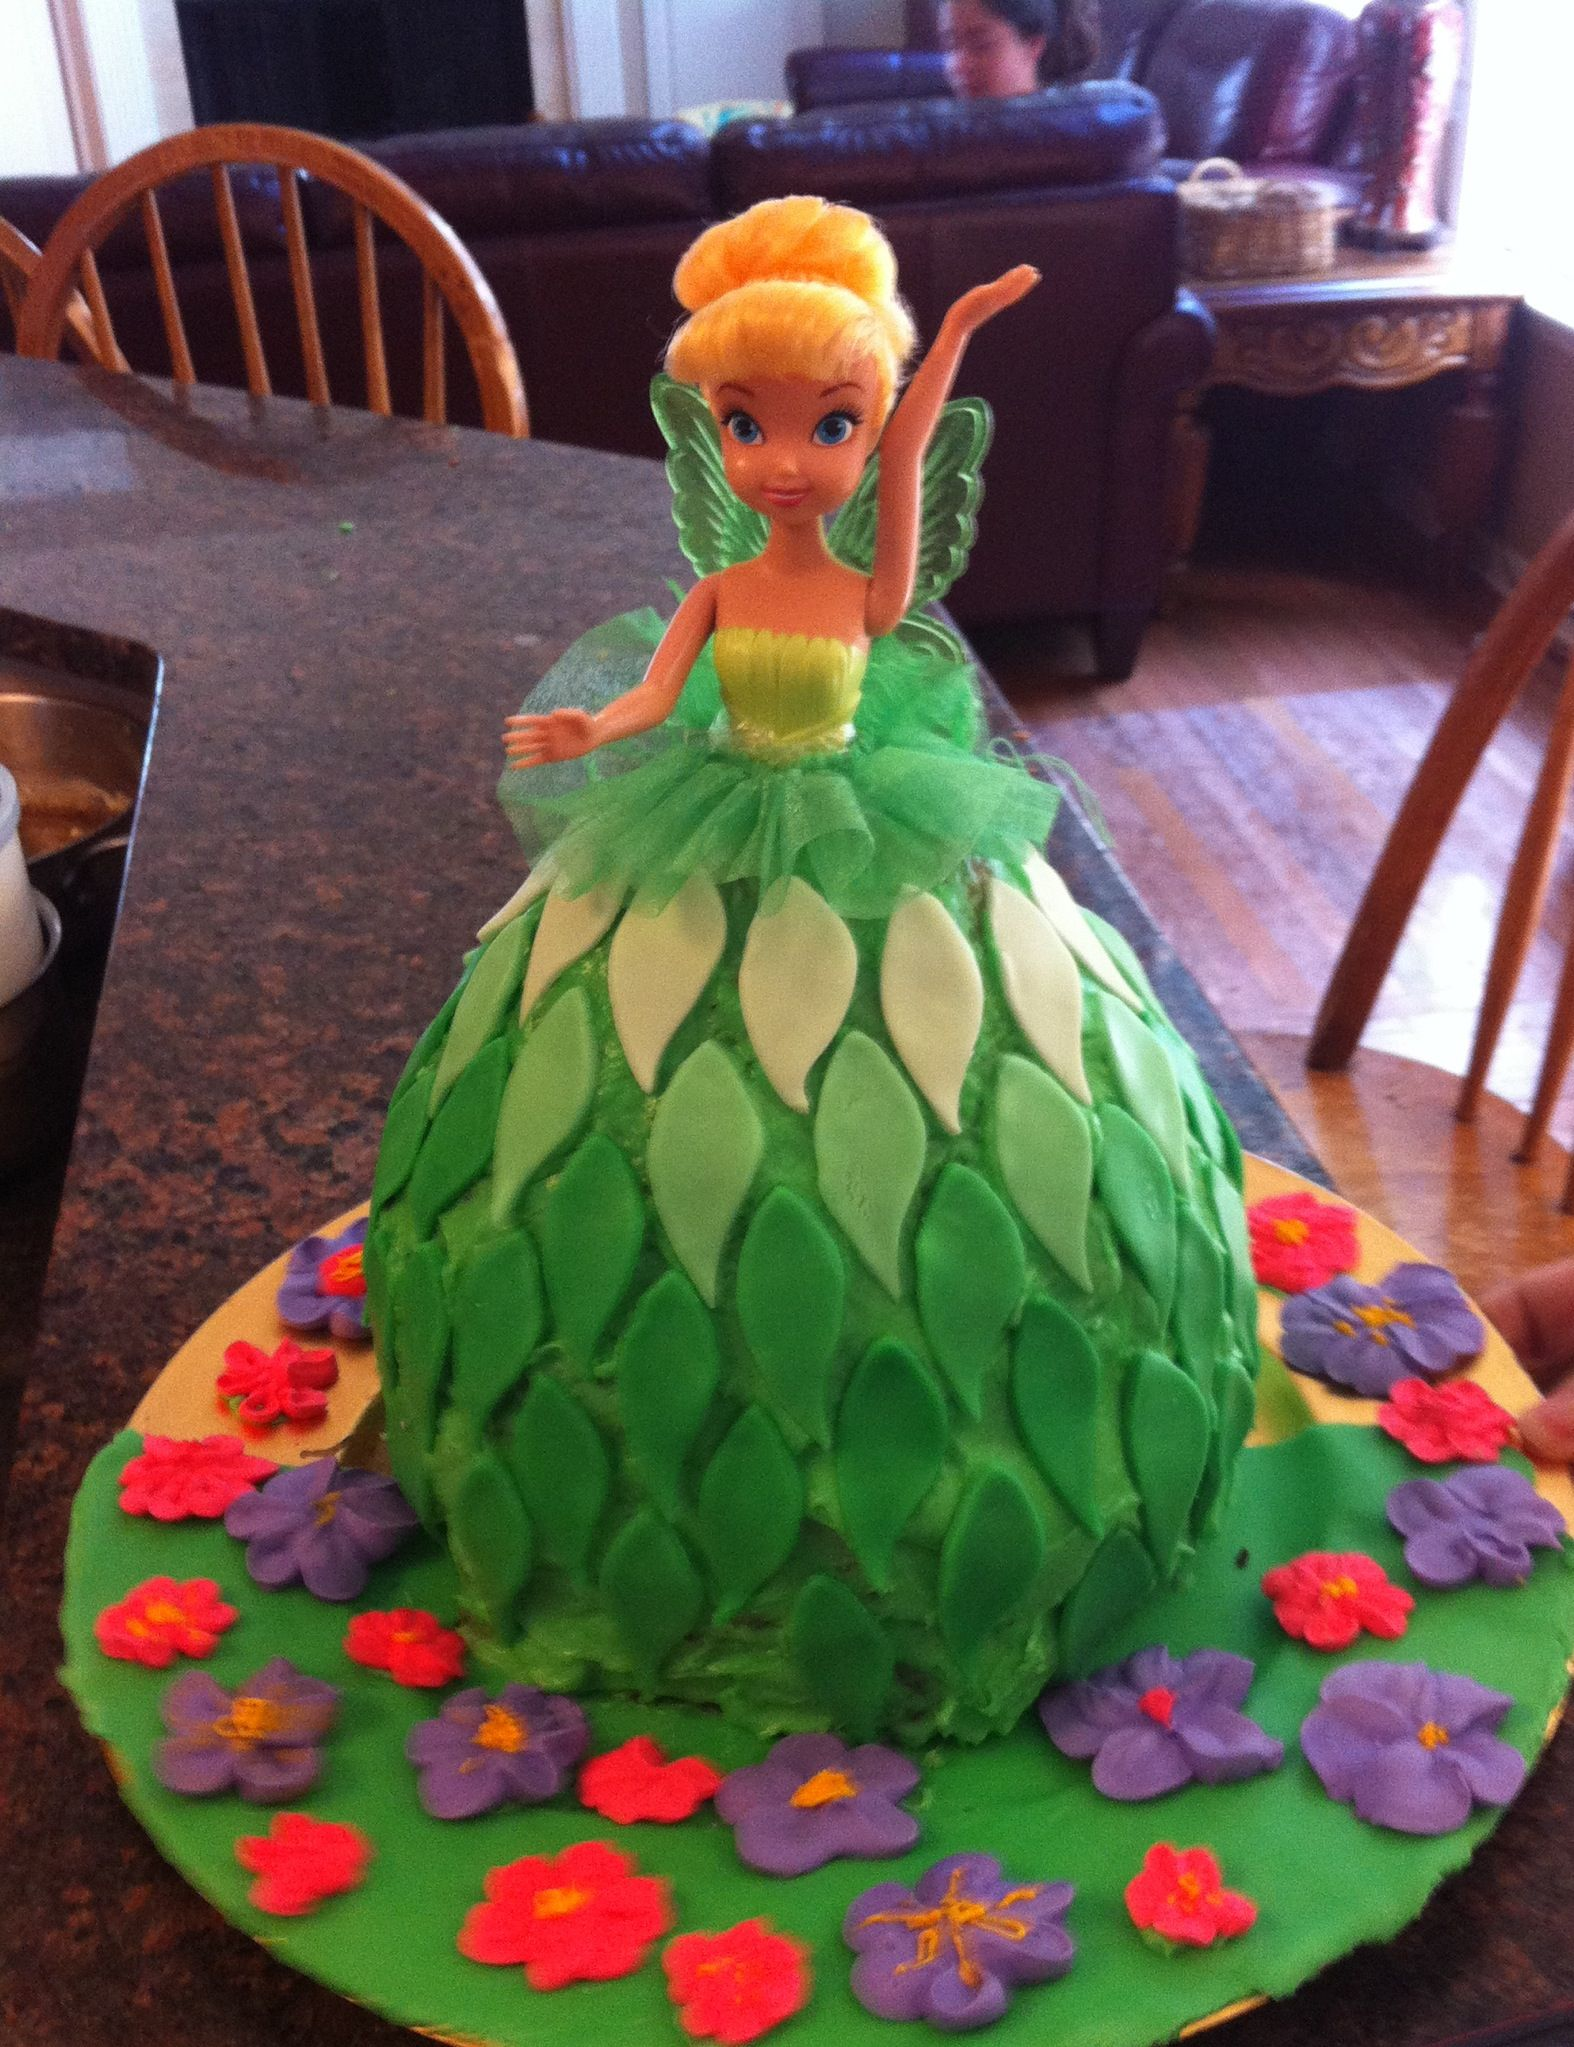 Tinker bell doll cake Fondant leaves in ombr colors Chocolate and